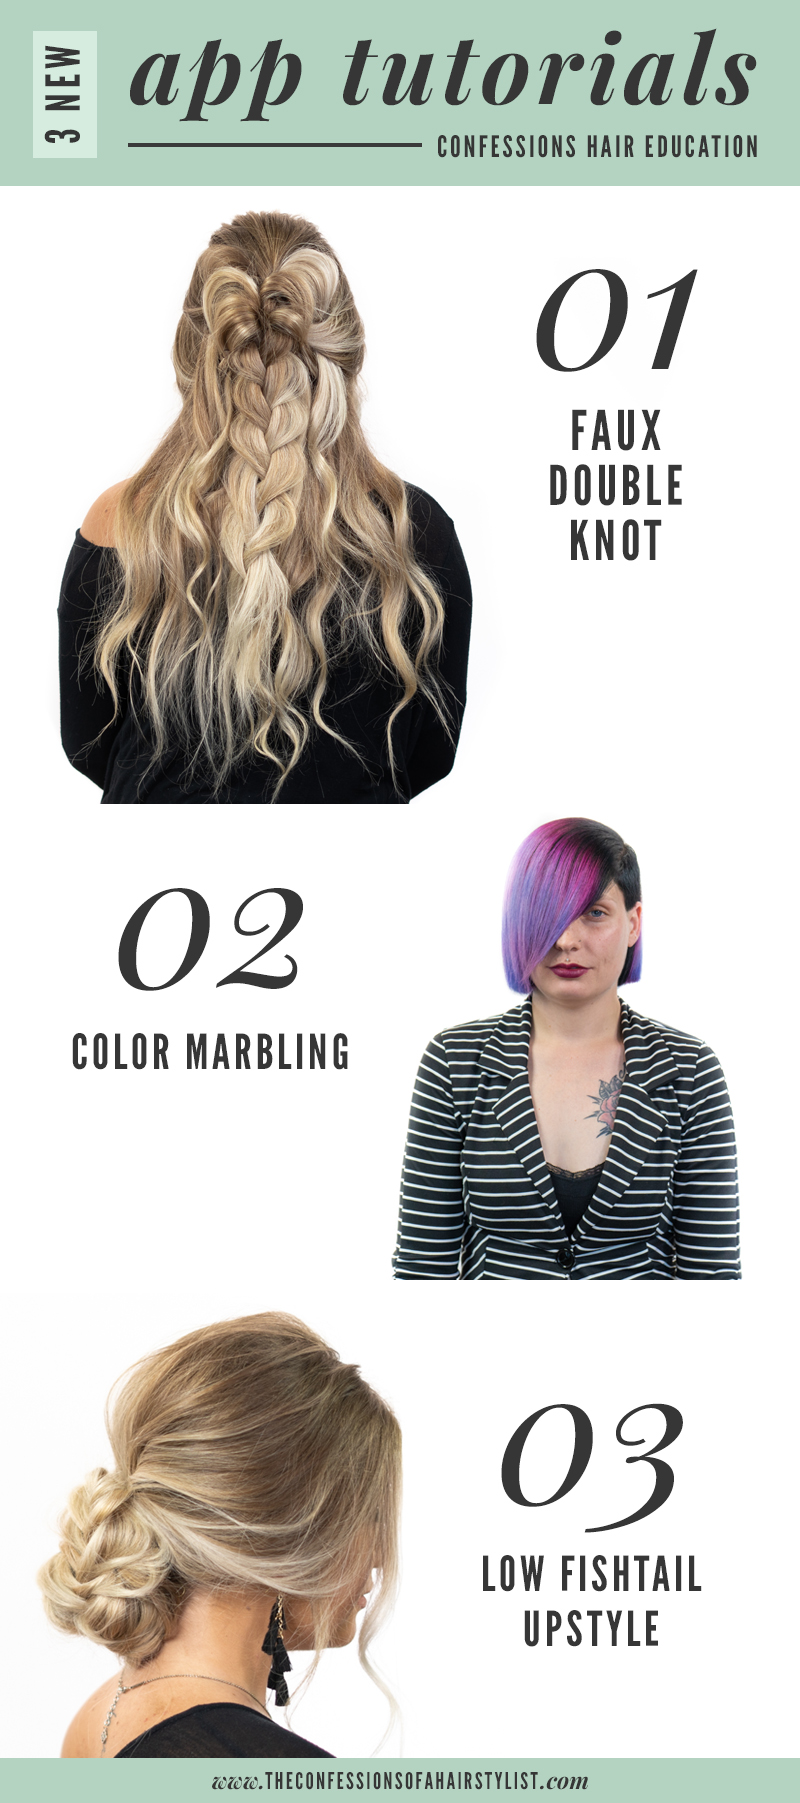 New August tutorials + looks on the Confessions of a Hairstylist education app!